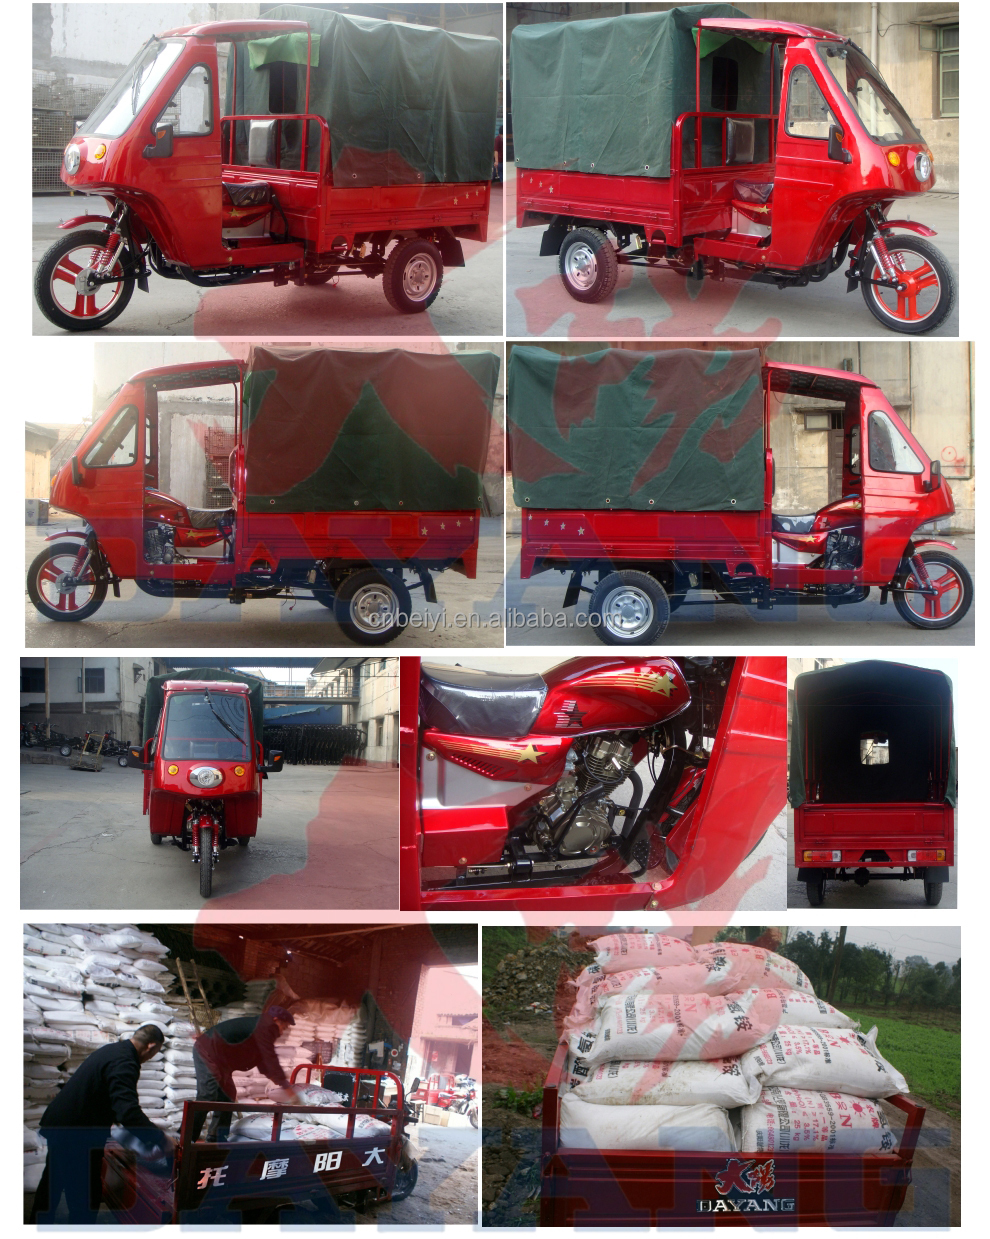 2015 hot sale heavy loading tricycle with canvas roof for sale